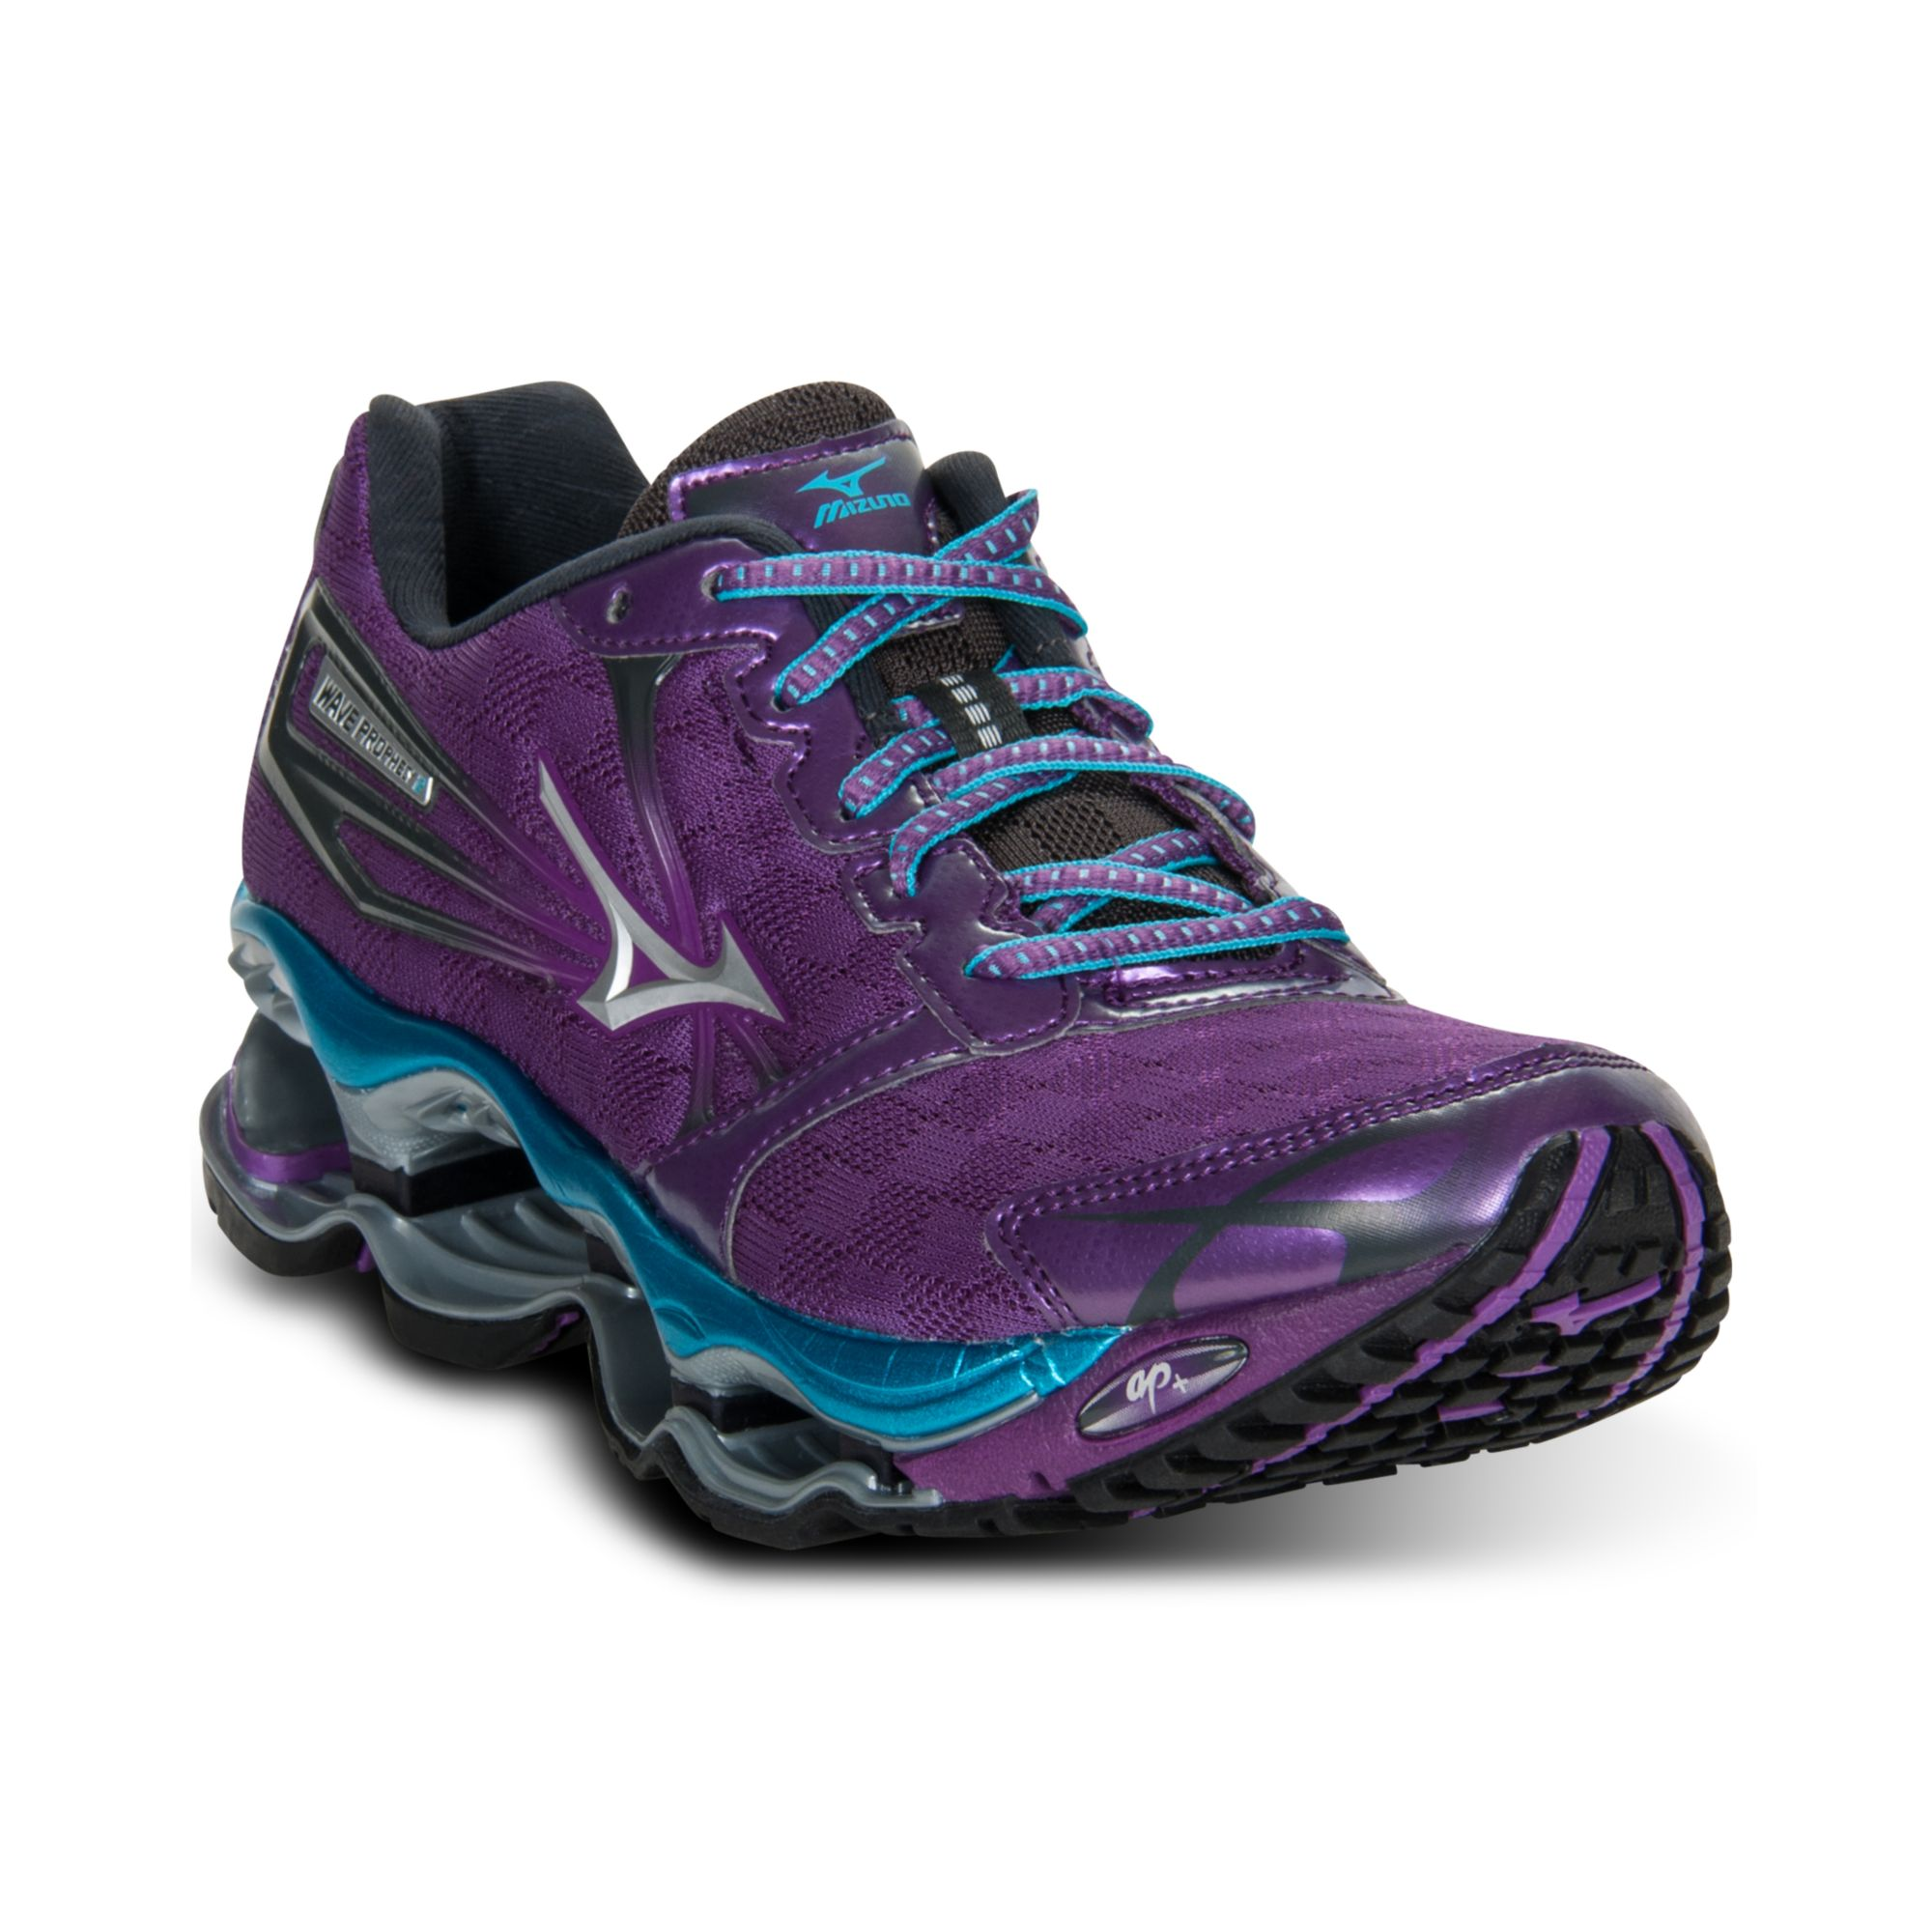 ... Running Shoes For Women In Sky Blue Orange Mizuno Wave Prophecy 2  Purple womens mizuno wave prophecy blue pink . ...